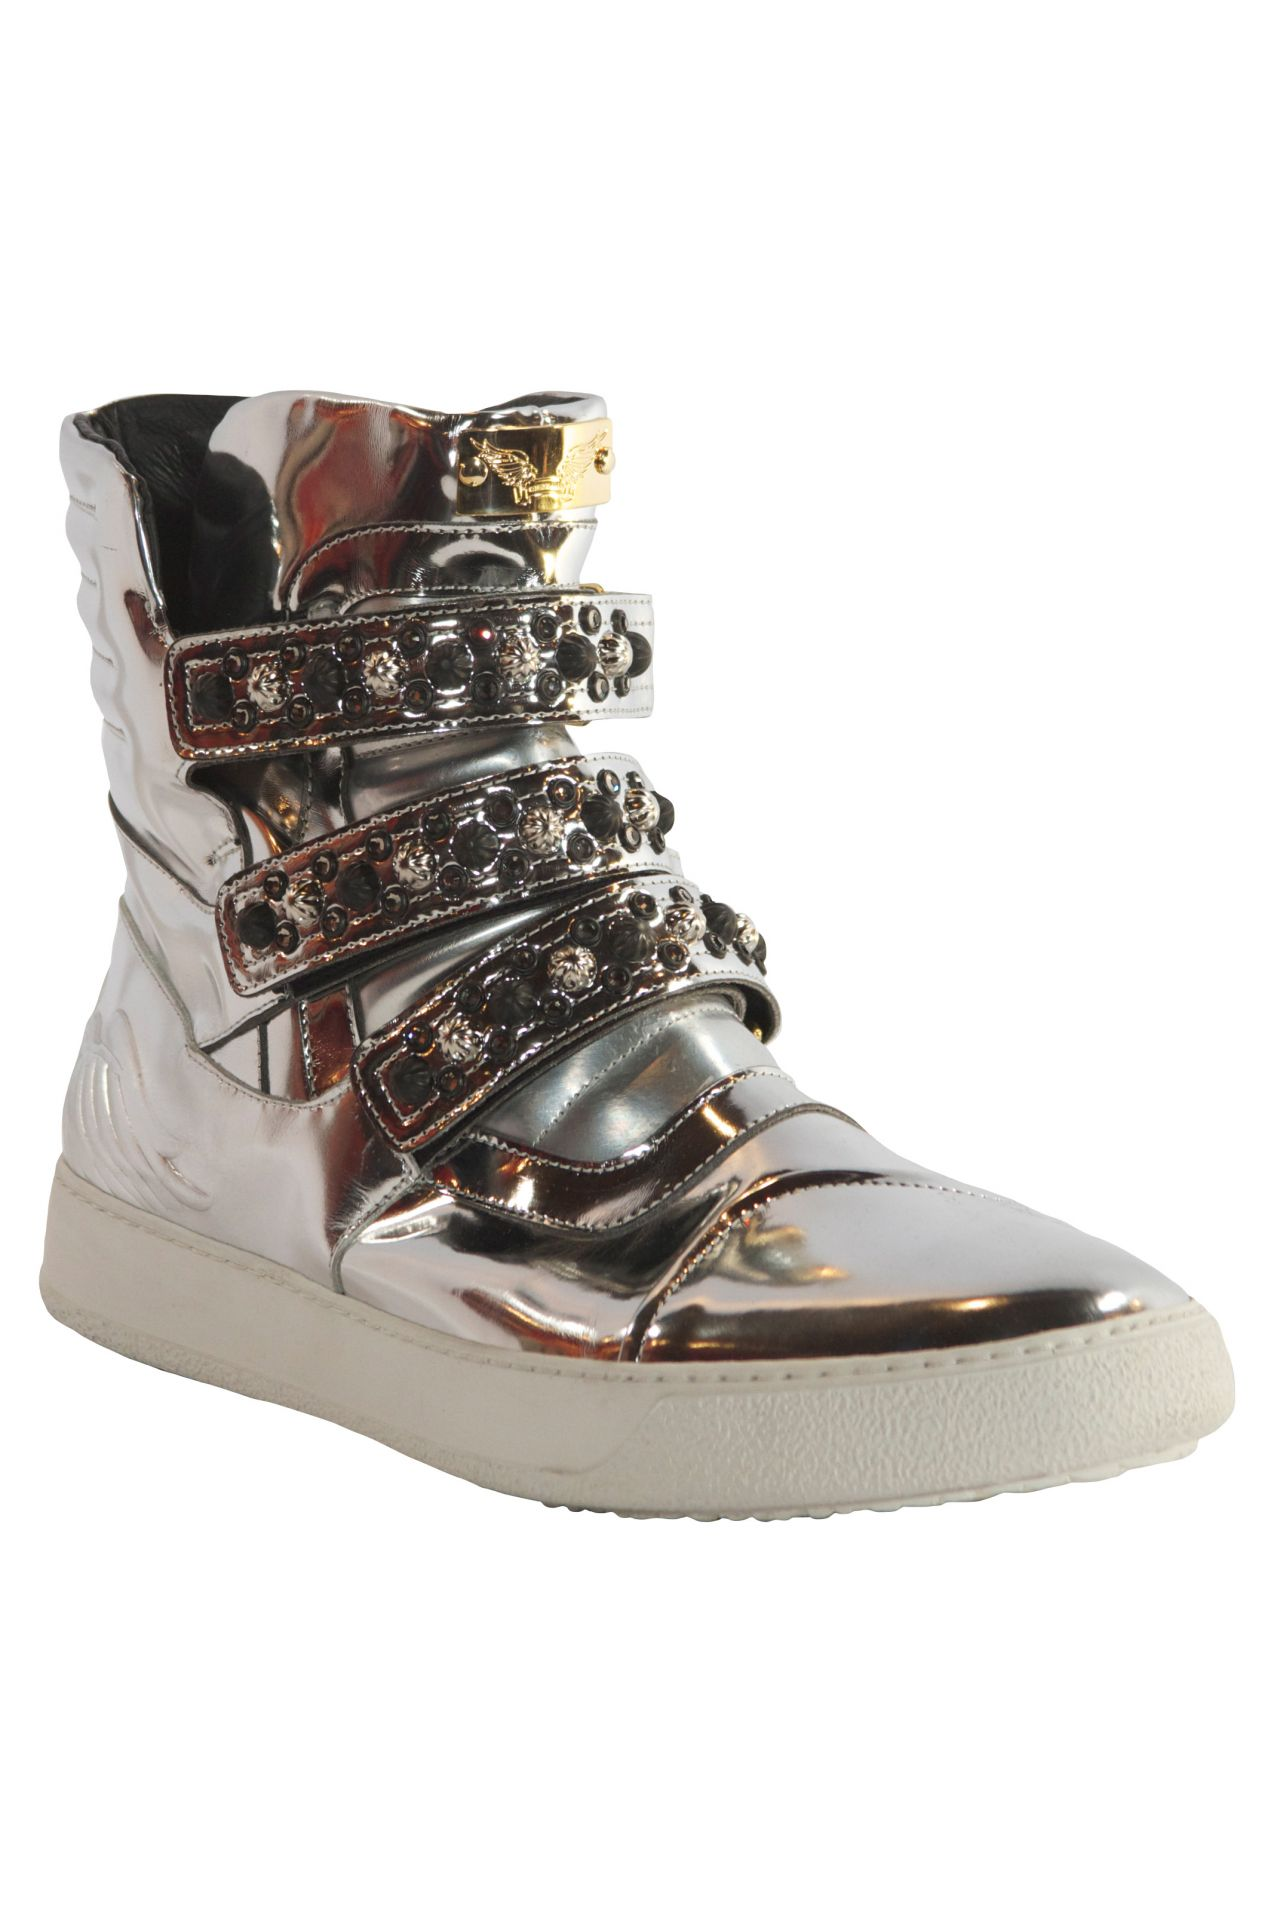 MID TOP STRAPES IN LAMINATE SILVER WITH STUDDING